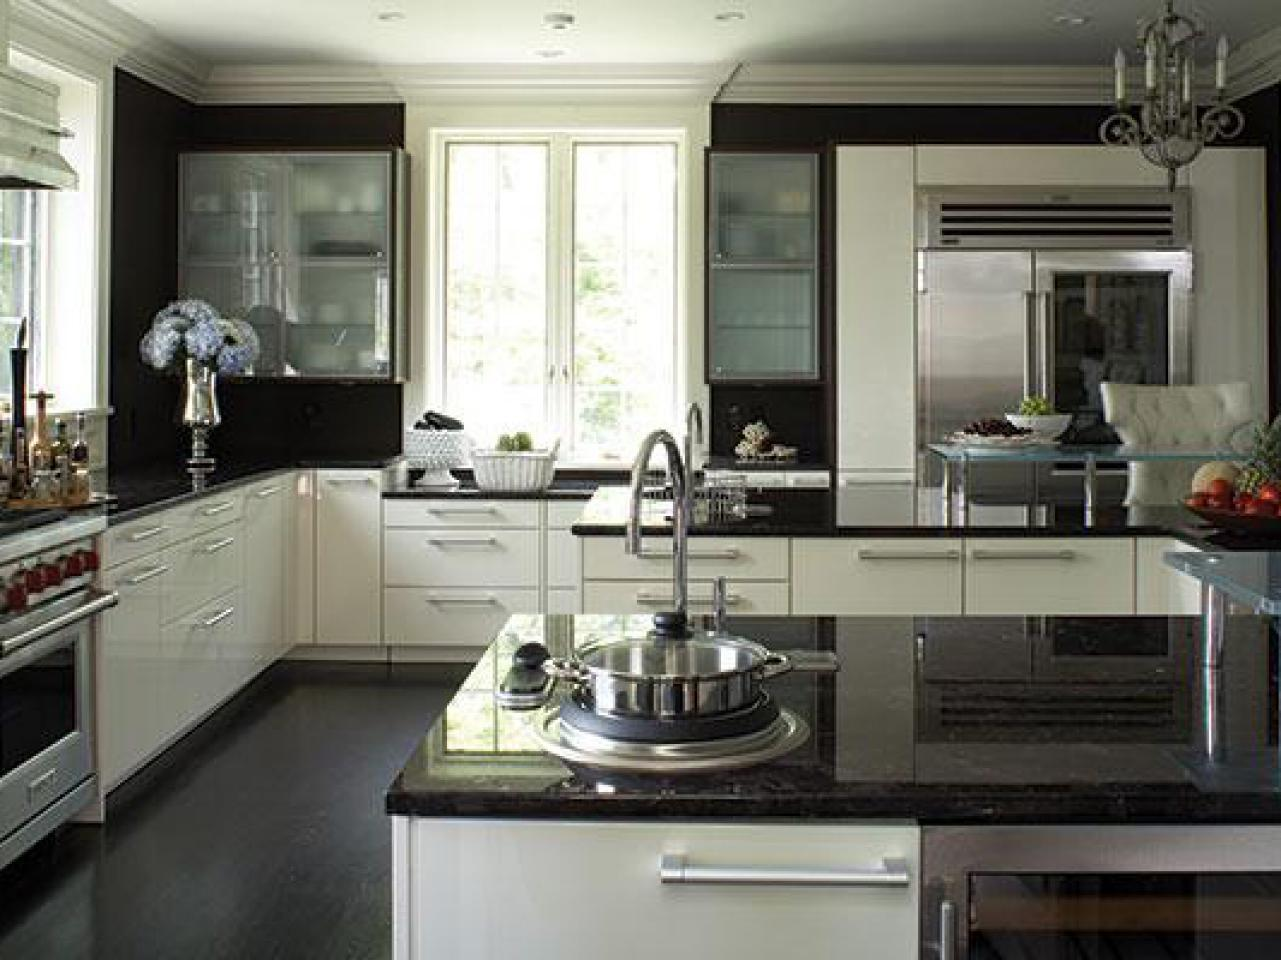 Black Granite Countertops A Daring Touch Of